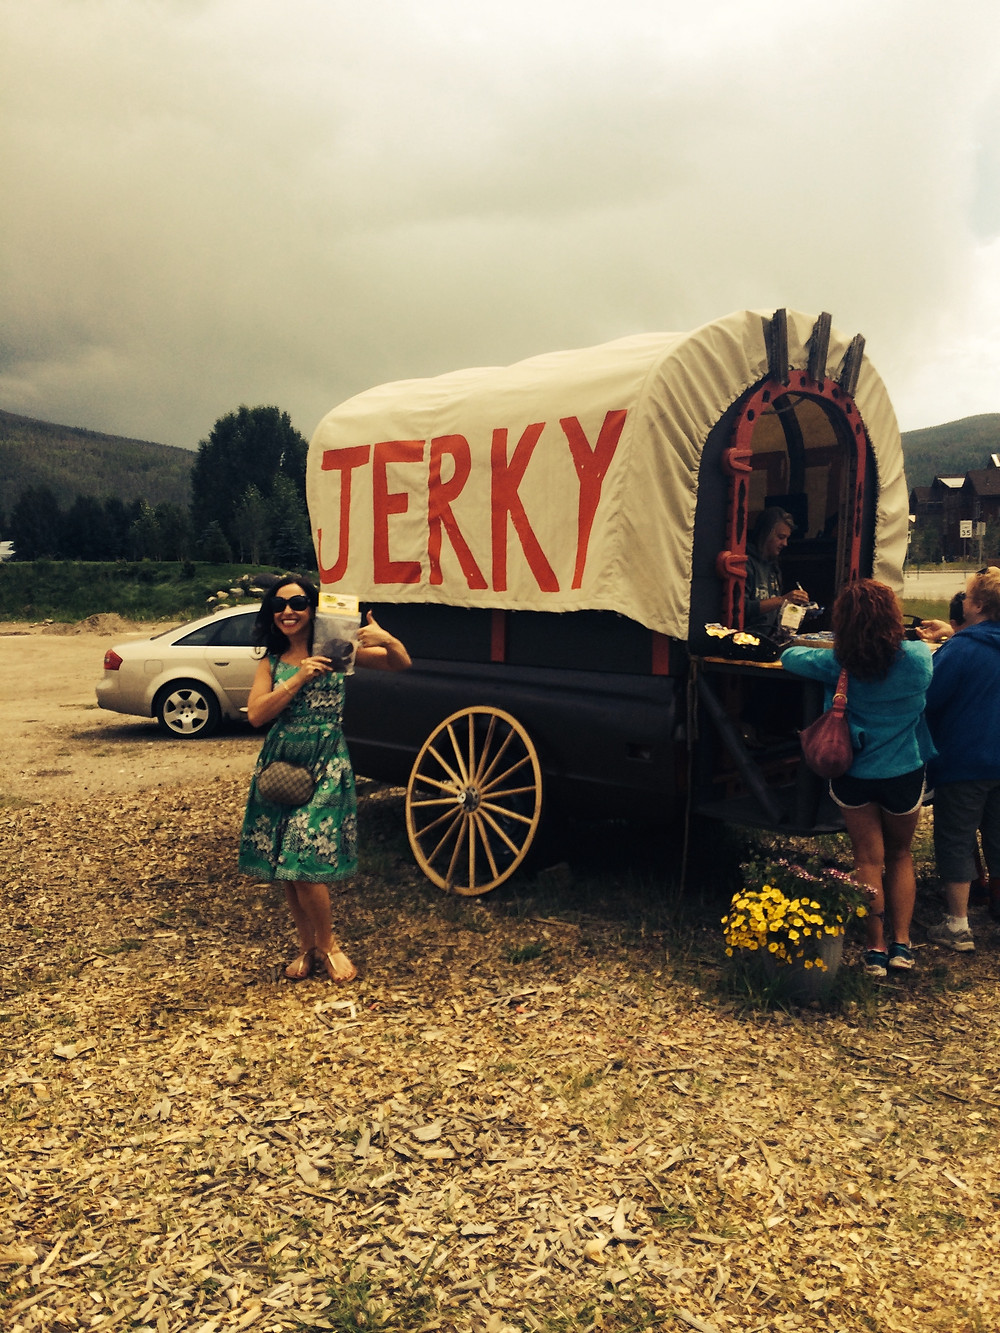 roadside jerky out of a covered wagon? OK!